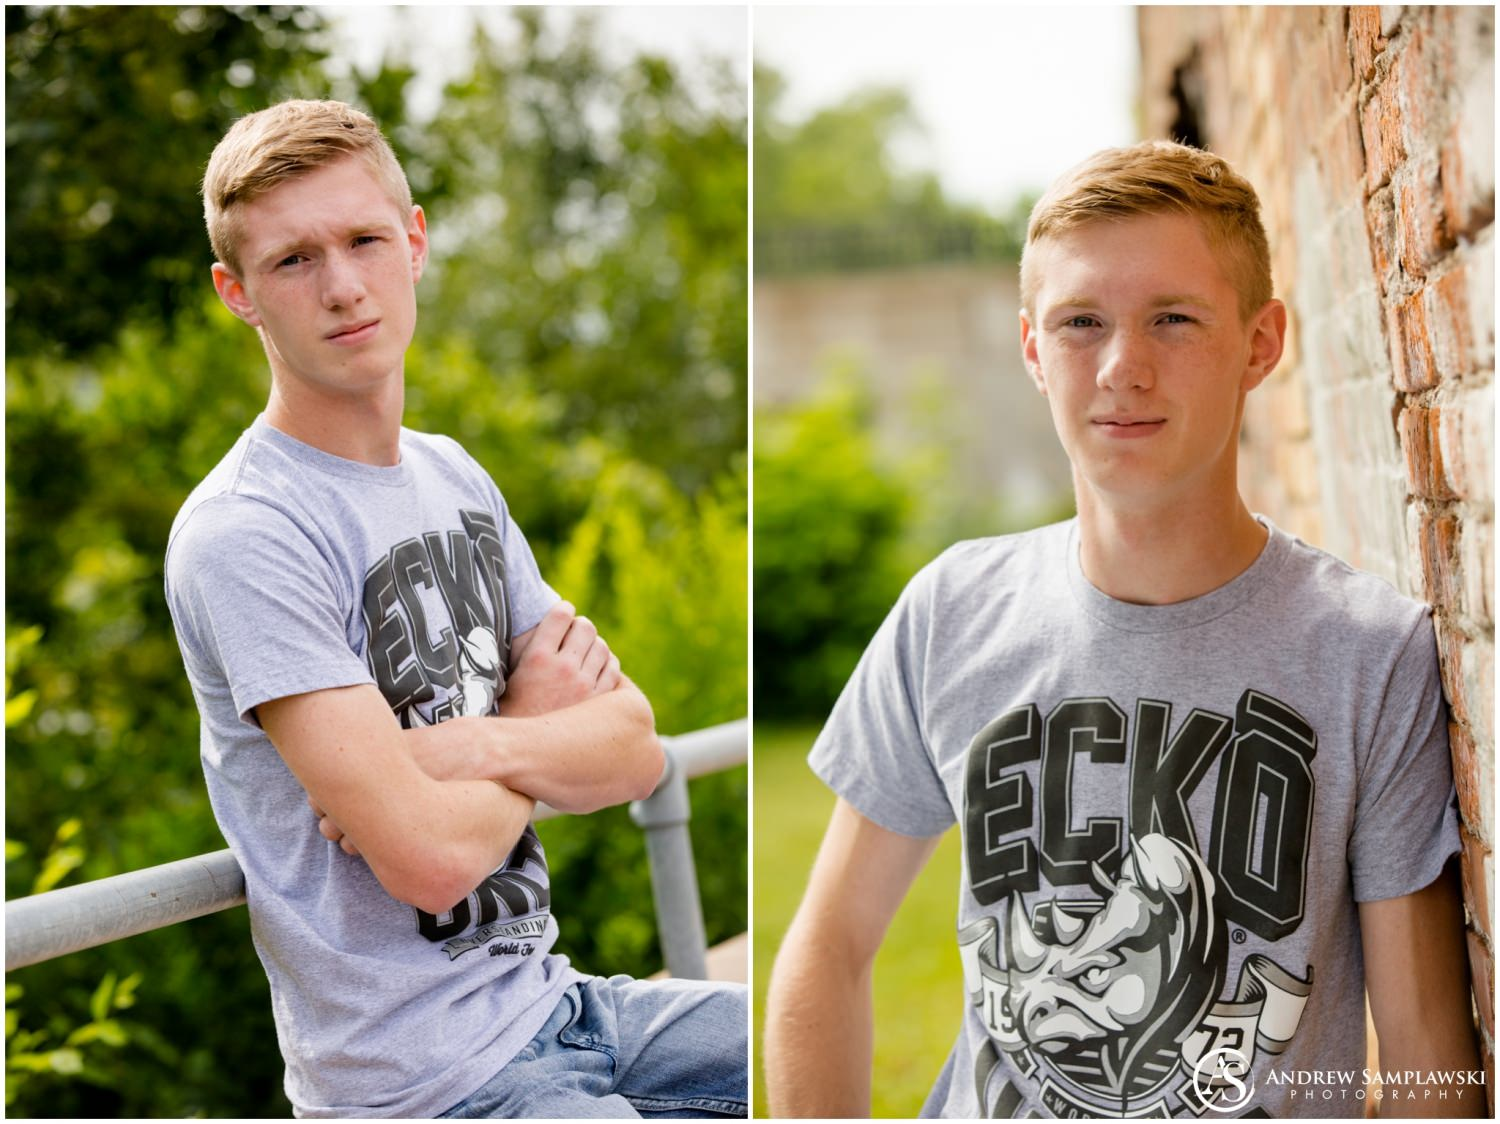 Chippewa Valley senior portraits andrew samplawski photography